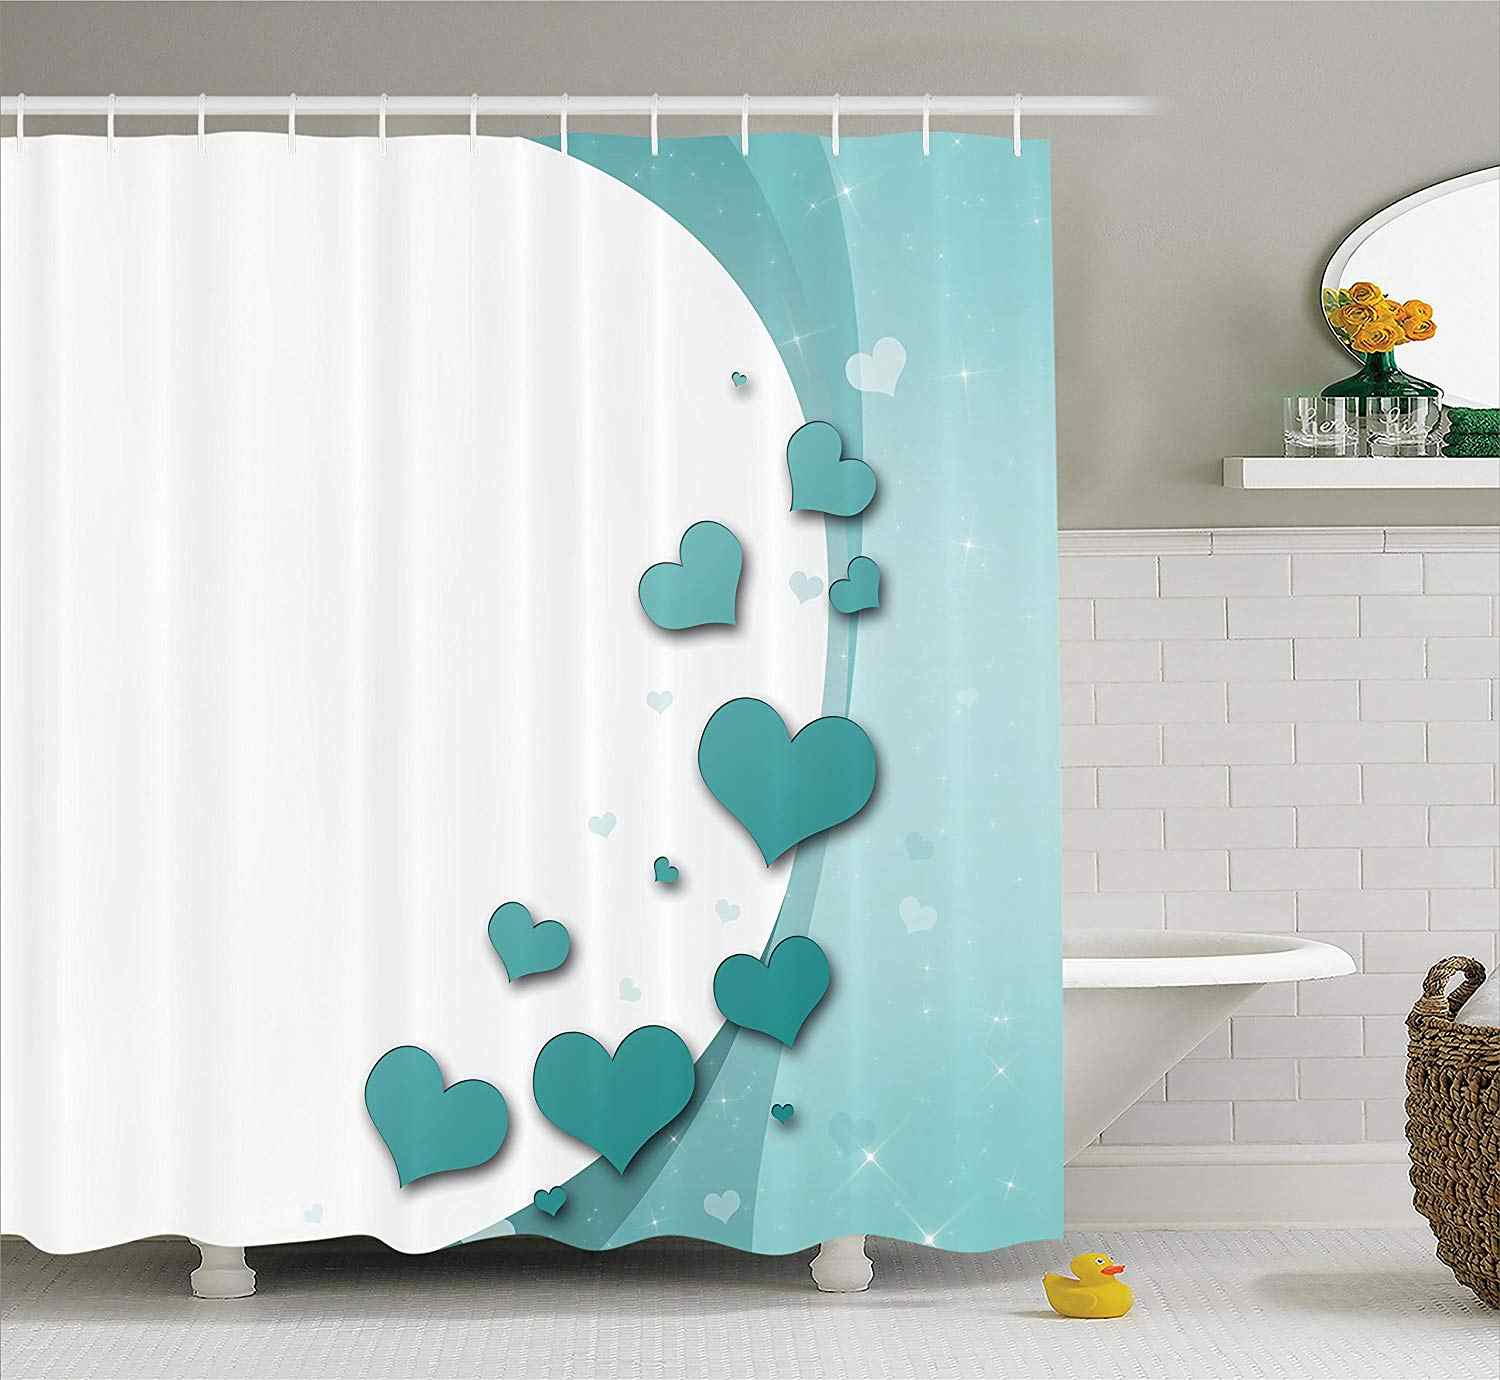 Valentines Day Turquoise Shower Curtain Love Romance With Hearts Stars Wedding Happiness Theme Bathroom Decor Curtains Aliexpress